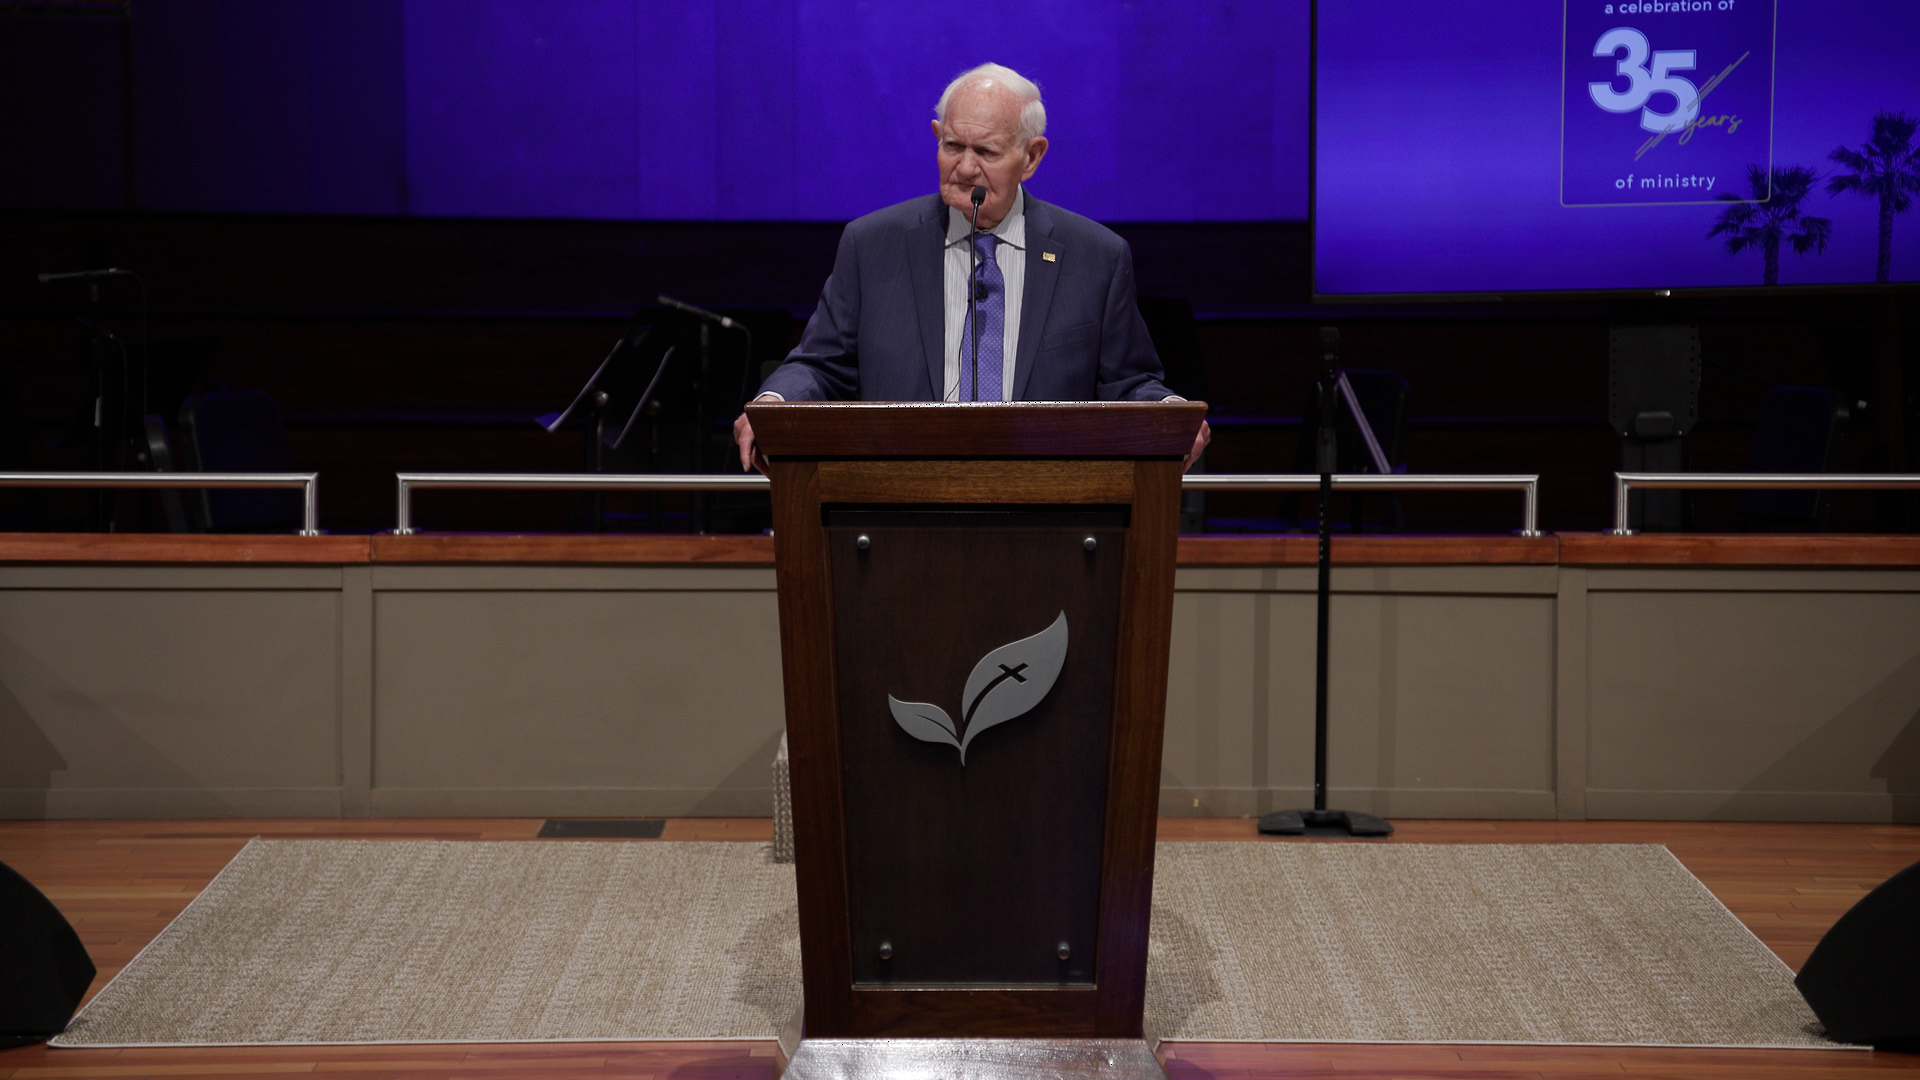 Dr. Don Sisk: The Lord Hath Done Great Things For Us